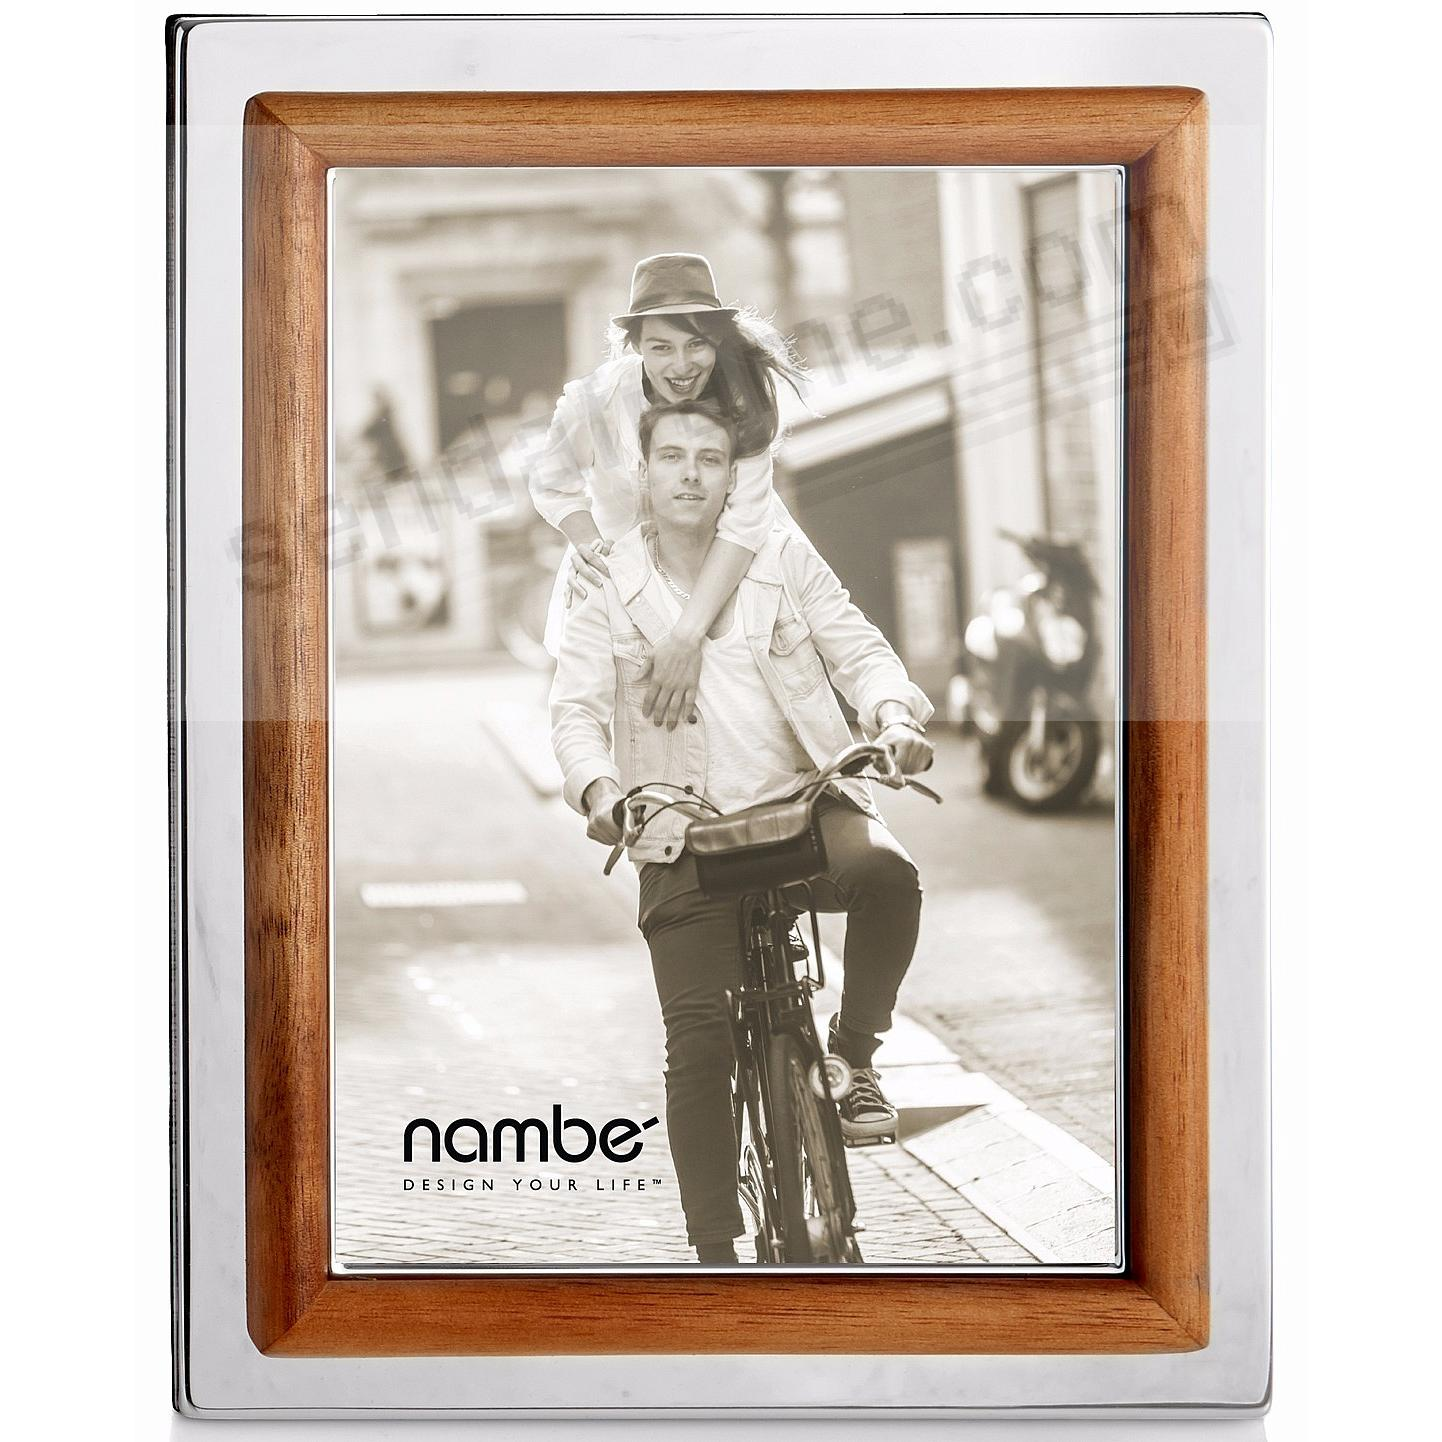 The HAYDEN frame by Nambe